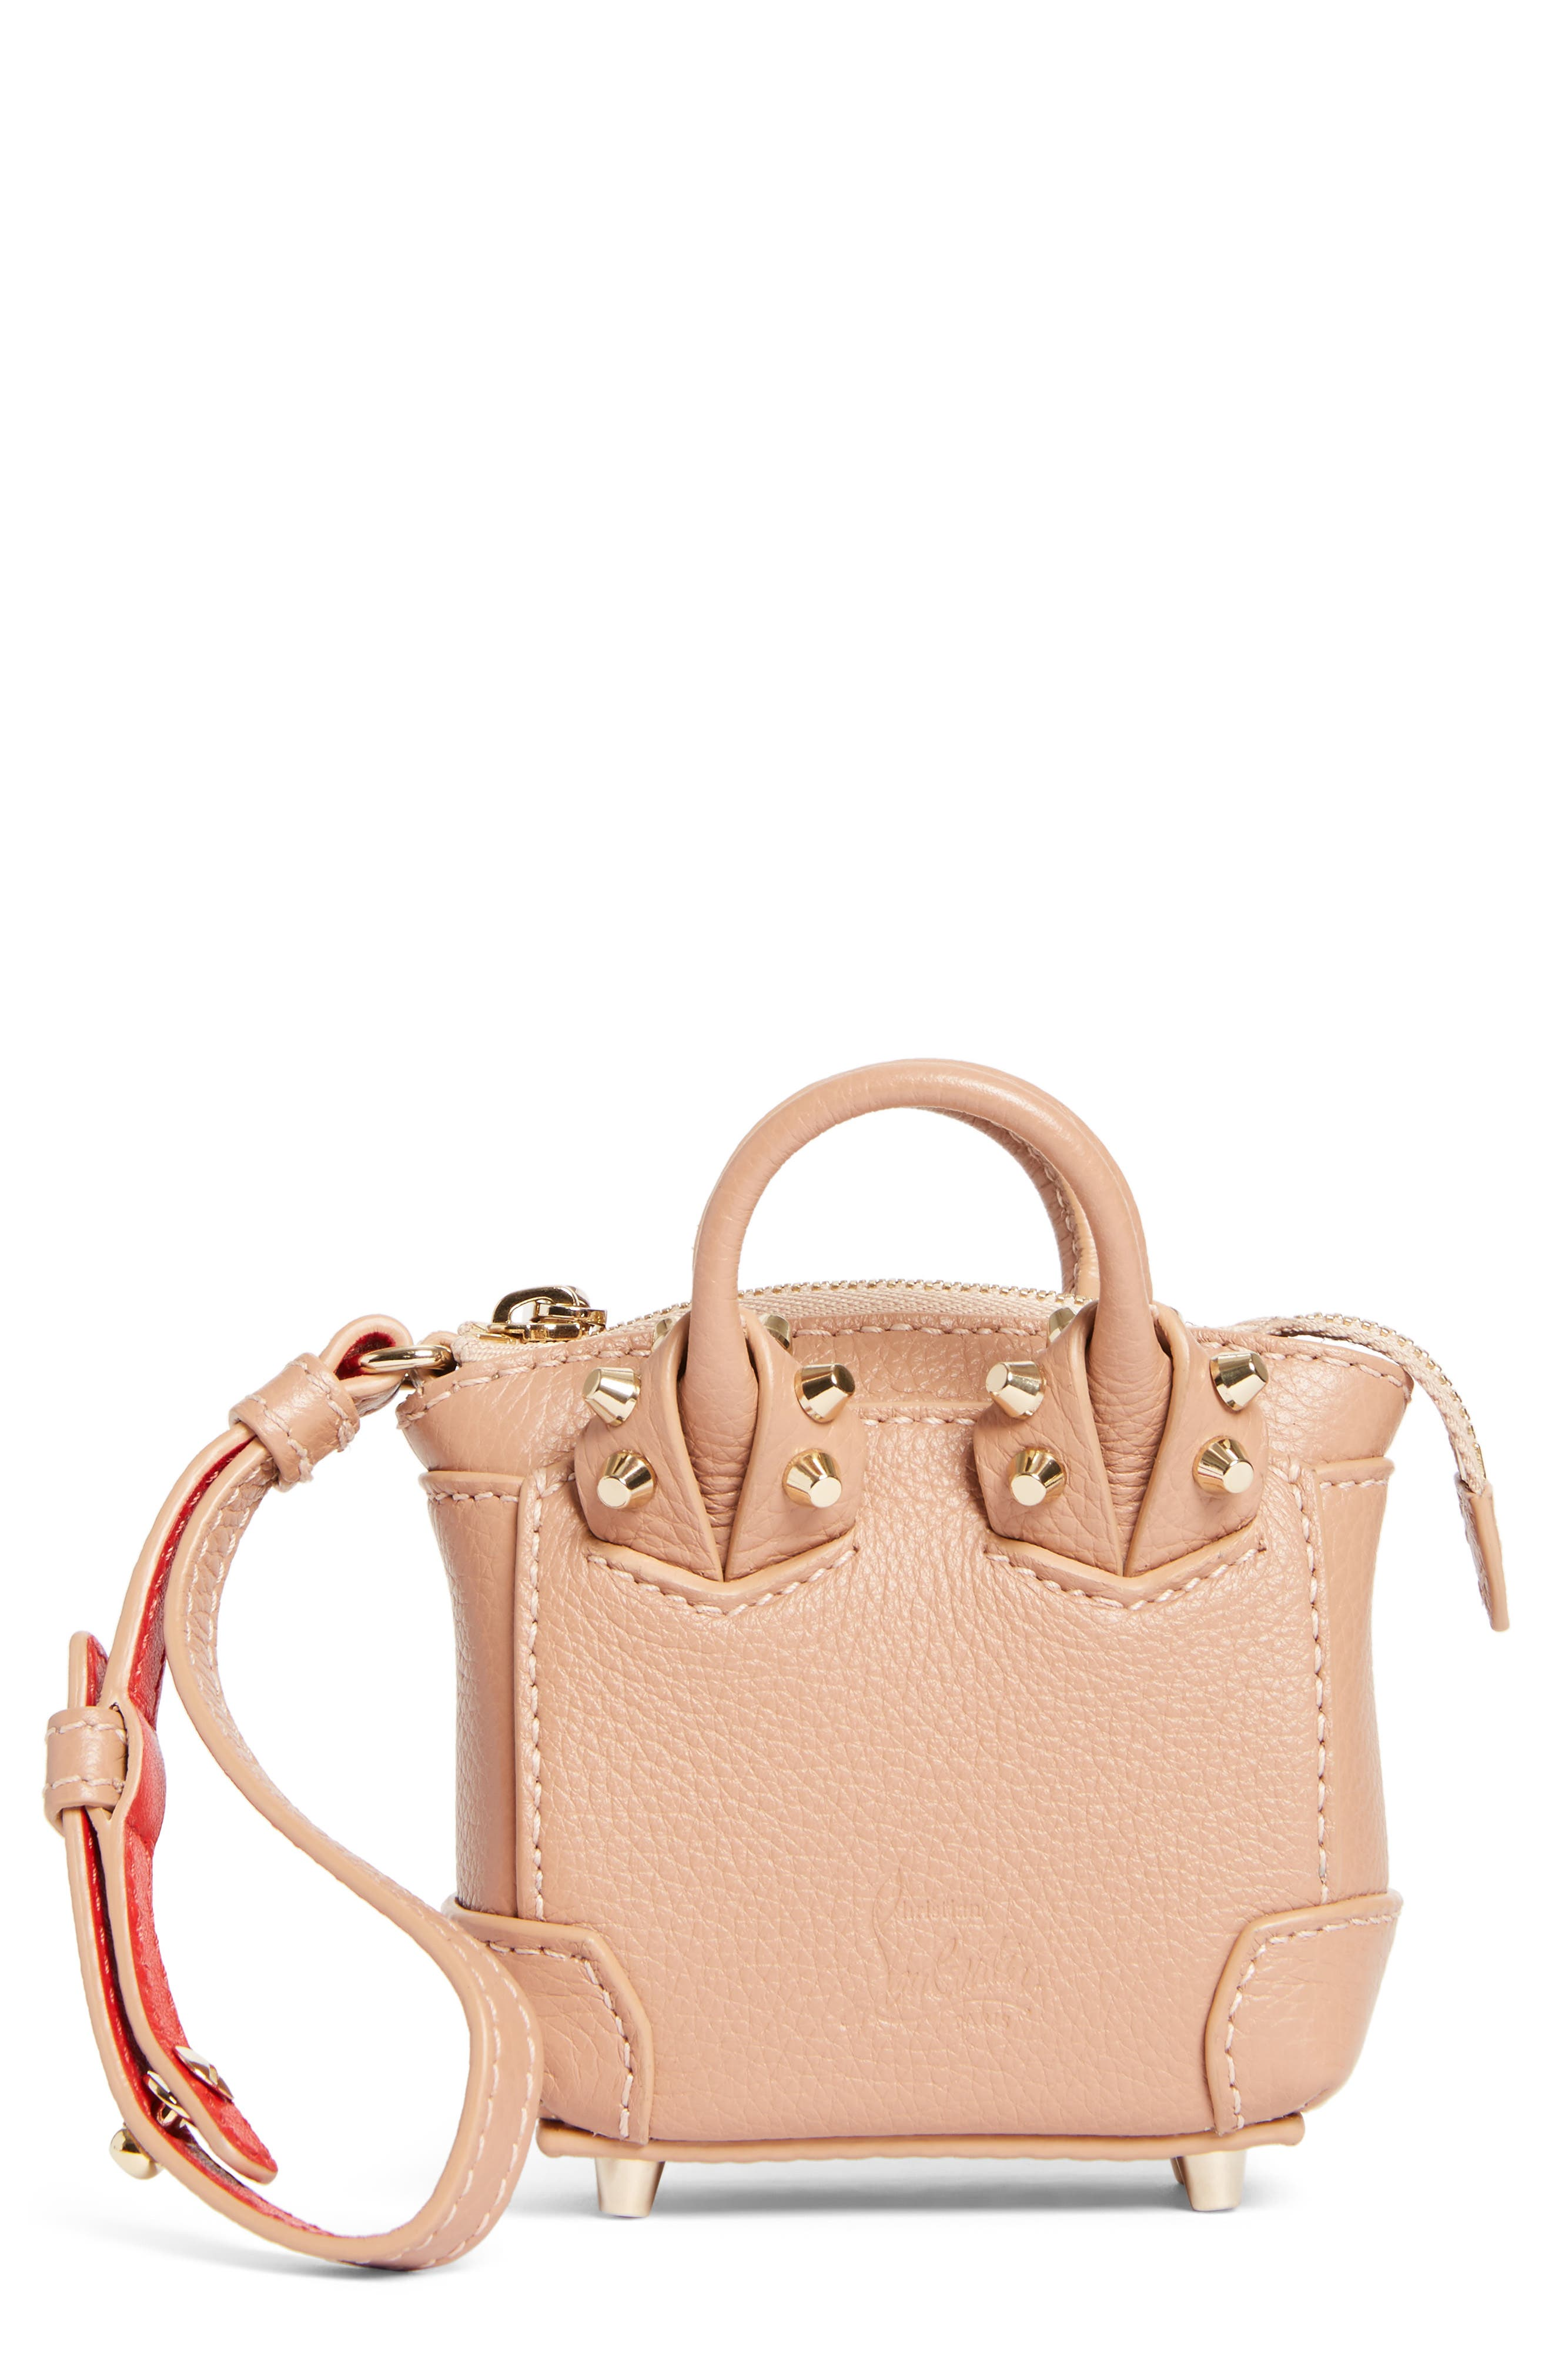 Christian Louboutin Eloise Mini Leather Bag Charm